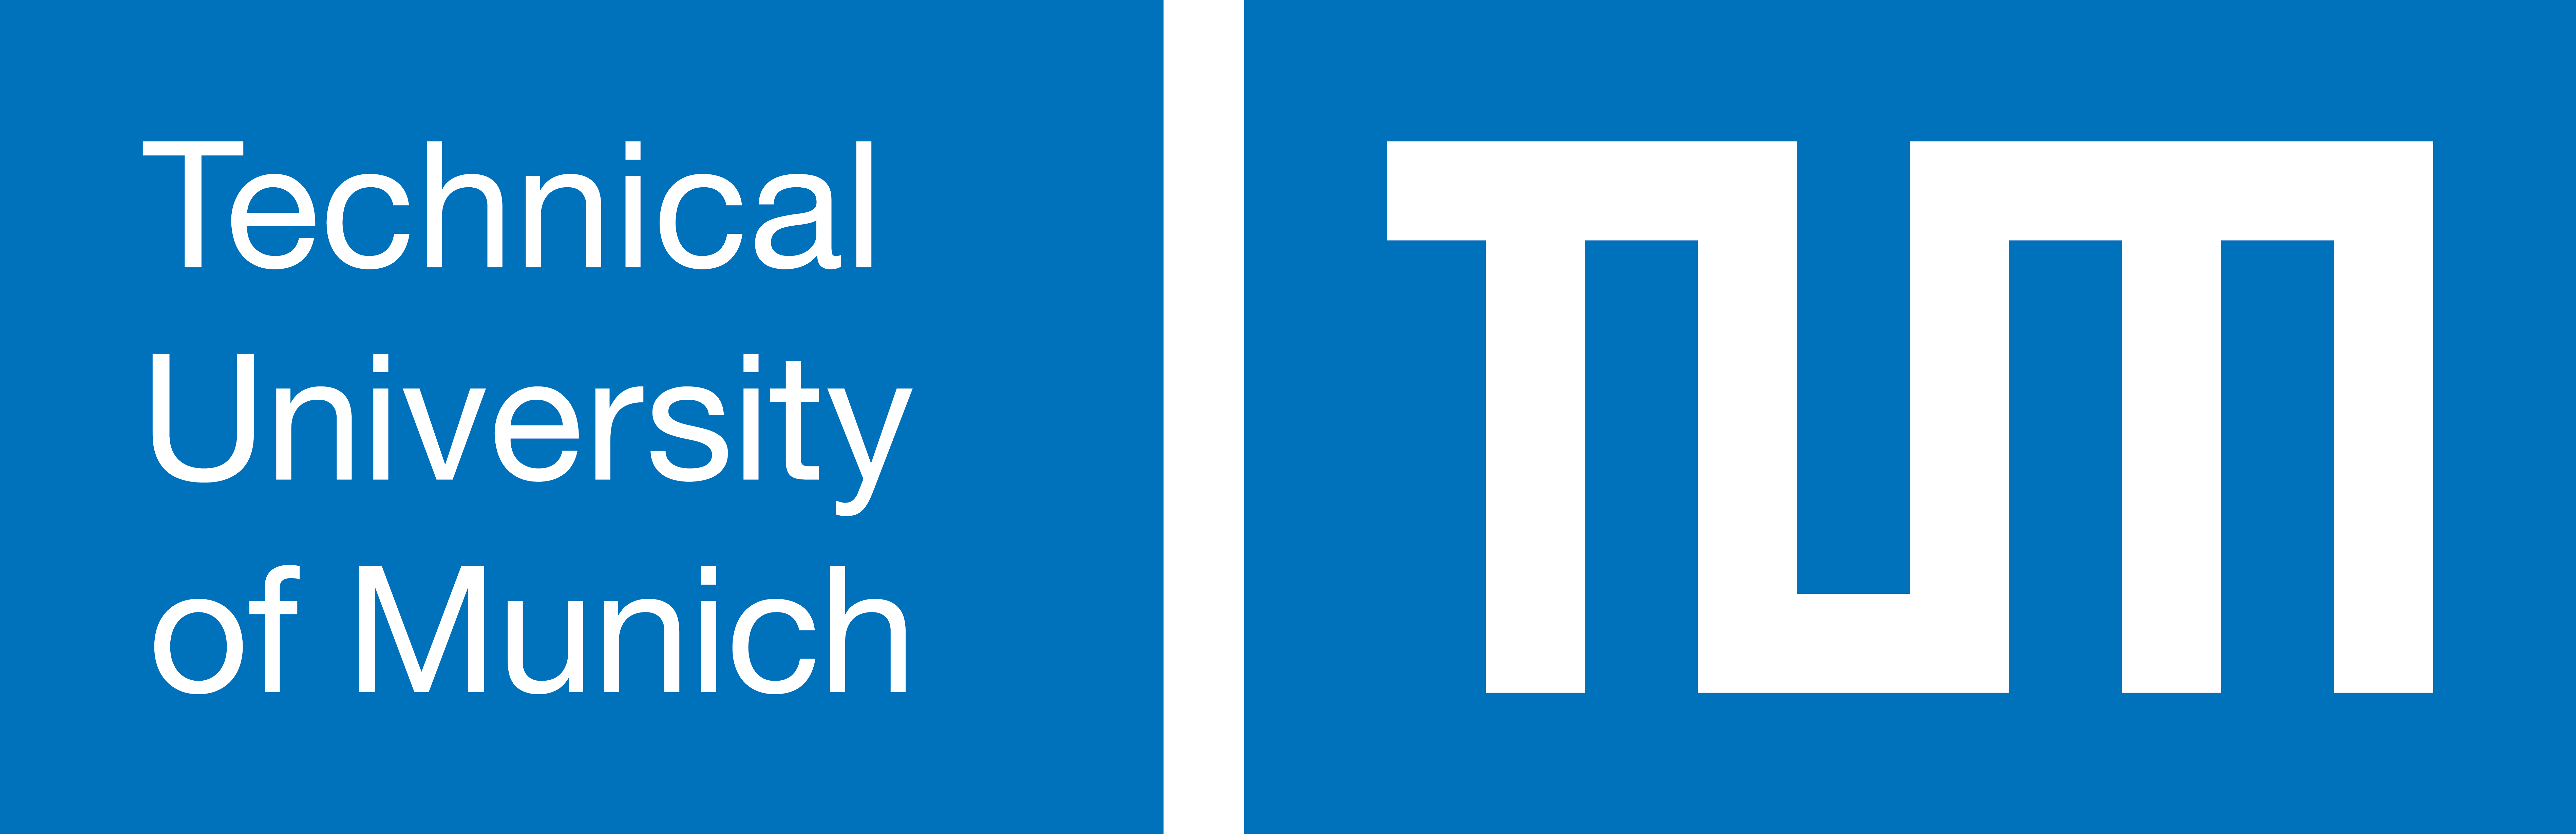 Technical University Munich logo